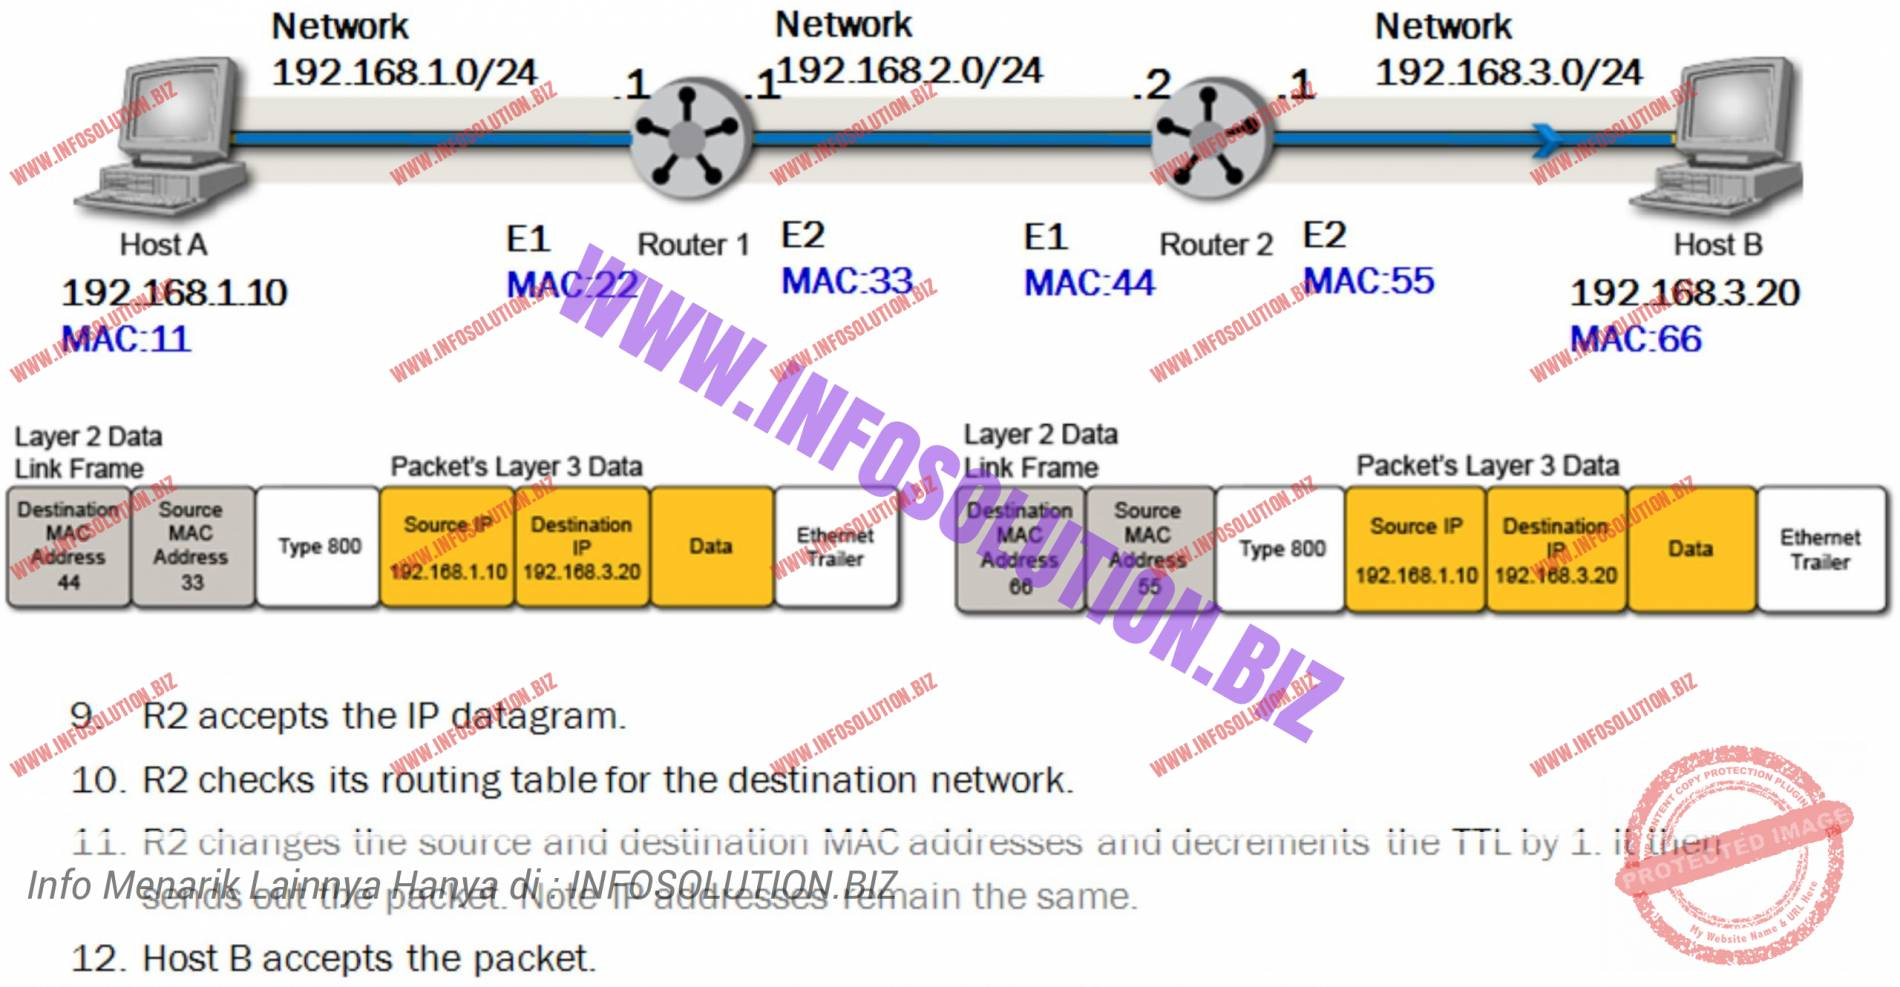 If default gateway's MAC address is not in Host A's cache